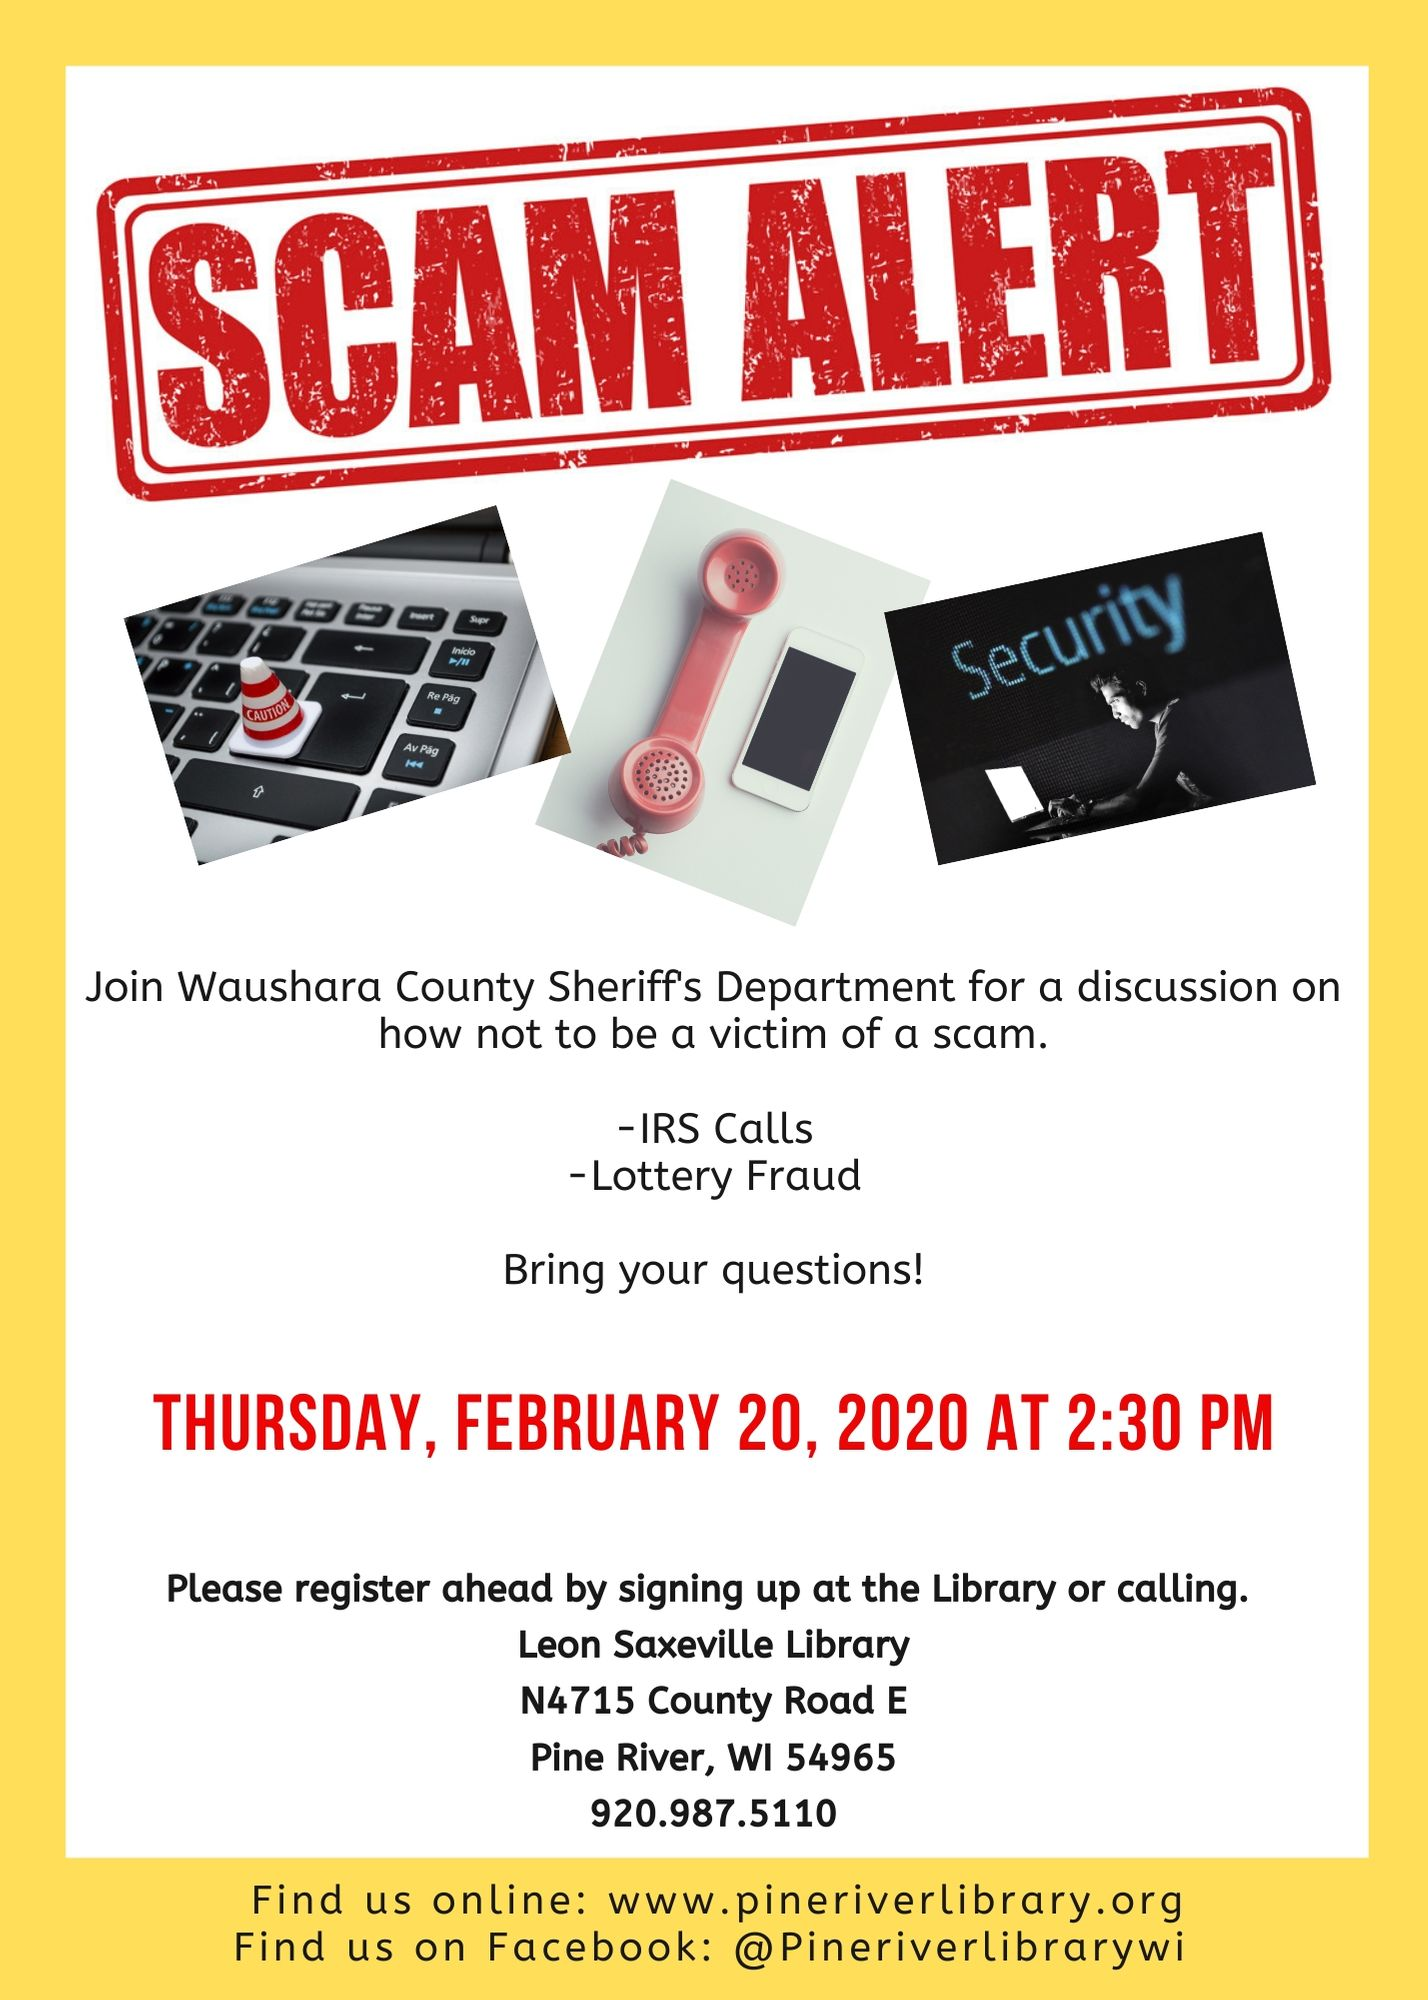 Scam Presentation By Waushara County Sheriff's Department